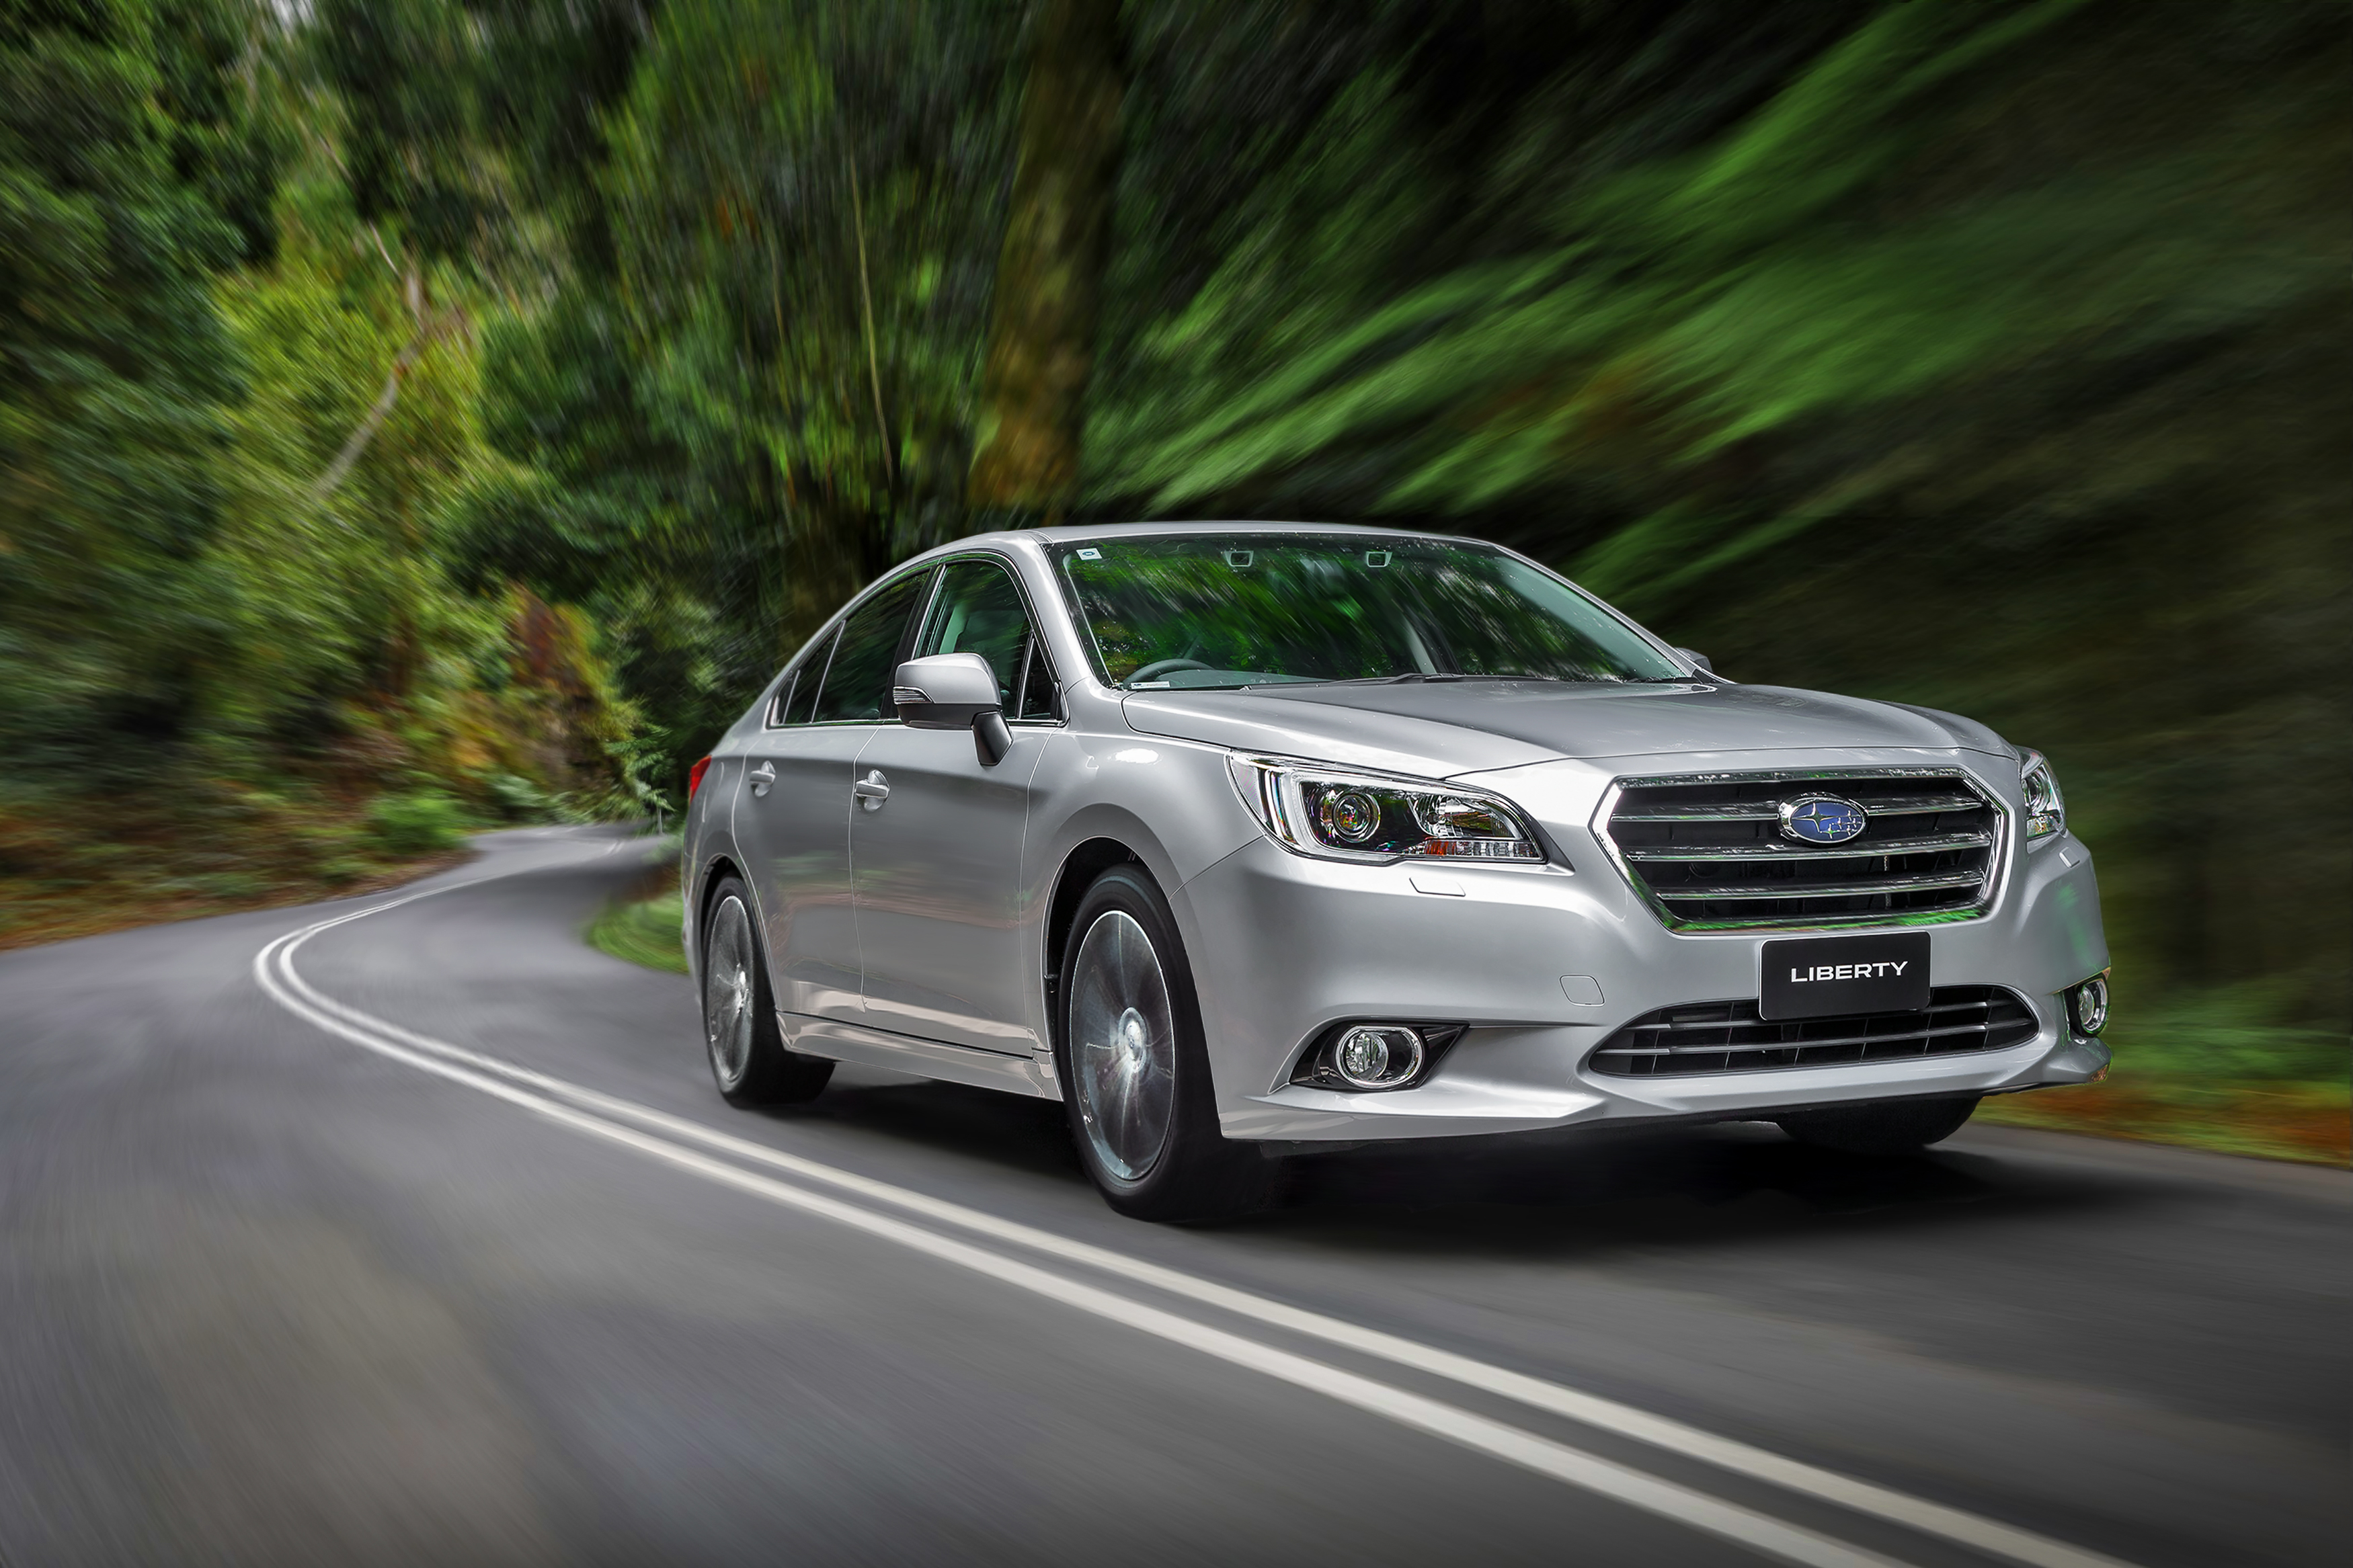 2016 Subaru Liberty Pricing And Specifications Photos